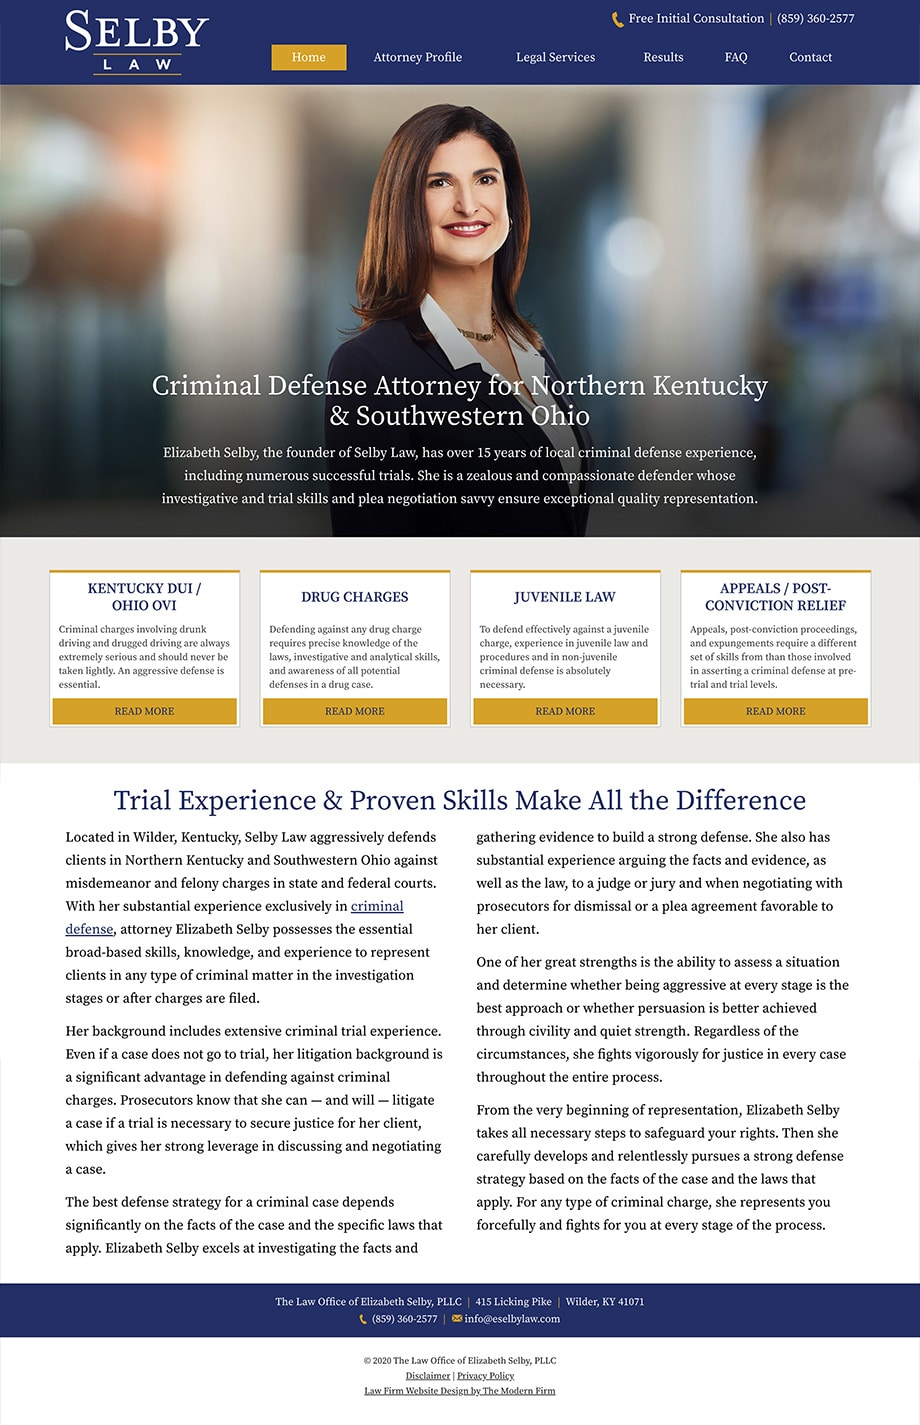 Law Firm Website Design for The Law Office of Elizabeth Selby, PLLC